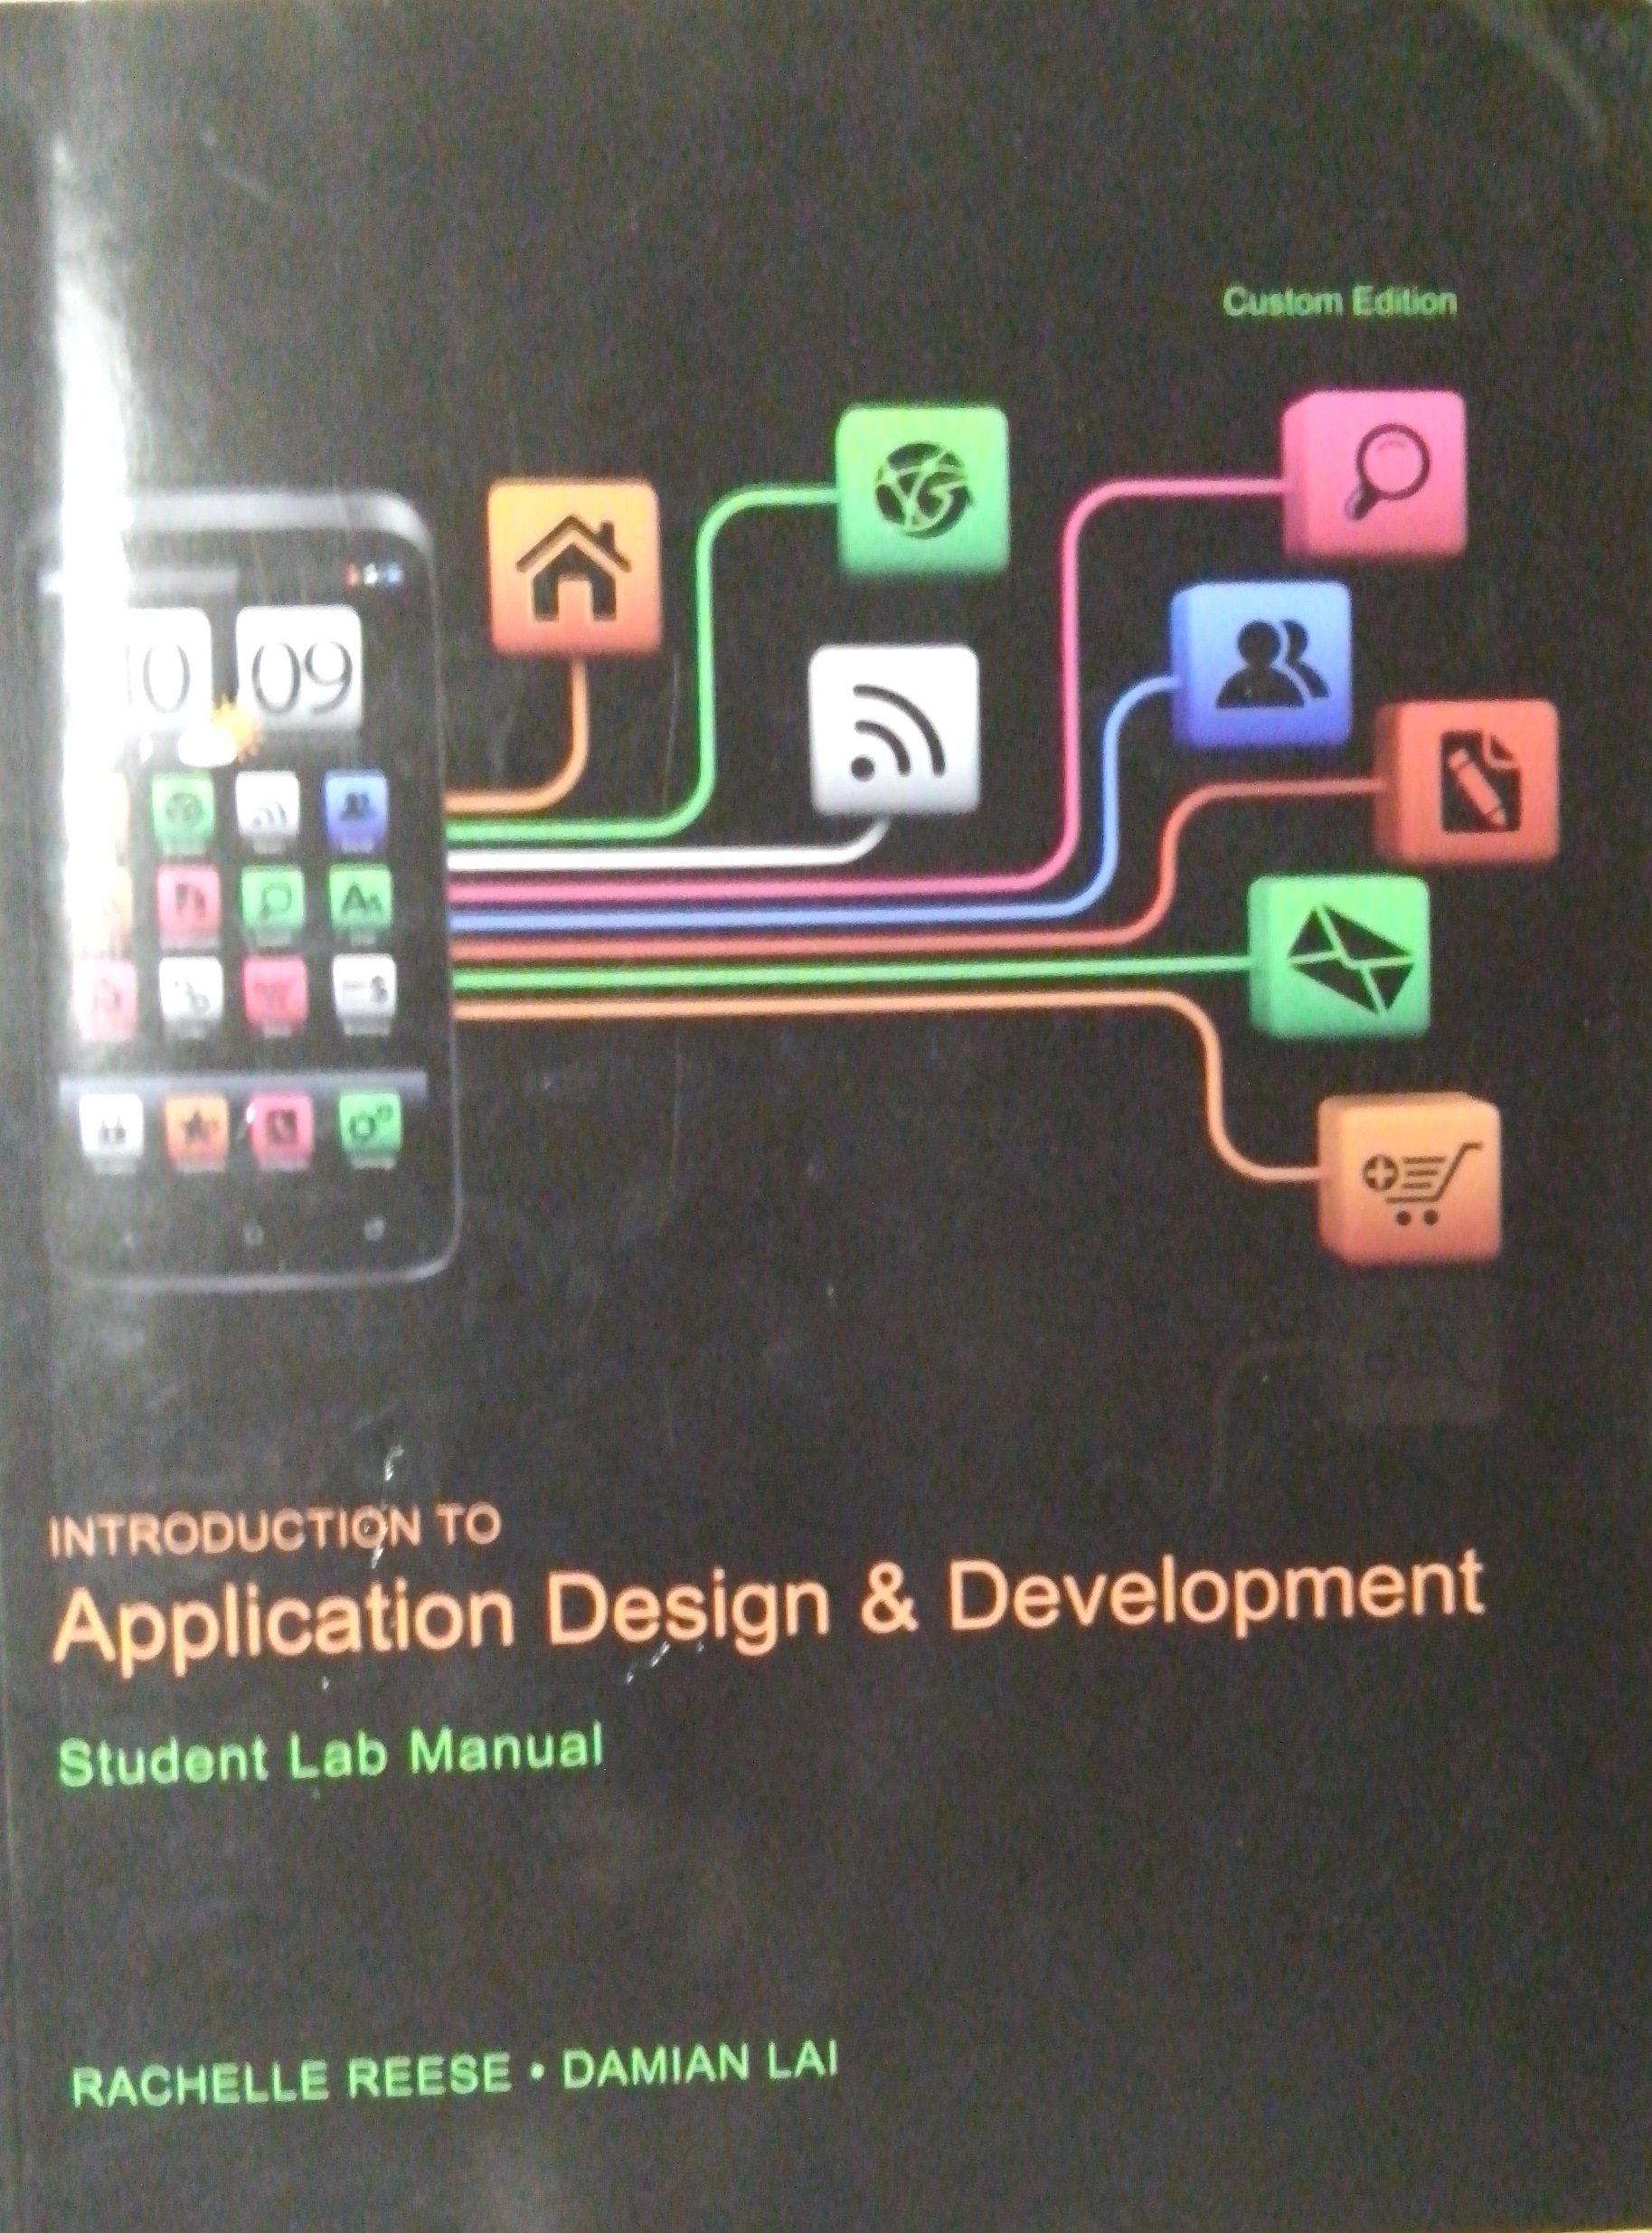 Introduction to Application Design & Development Student Lab Manual Custom  Edition: Rachelle Reese, Damian Lai: 9781269312851: Amazon.com: Books